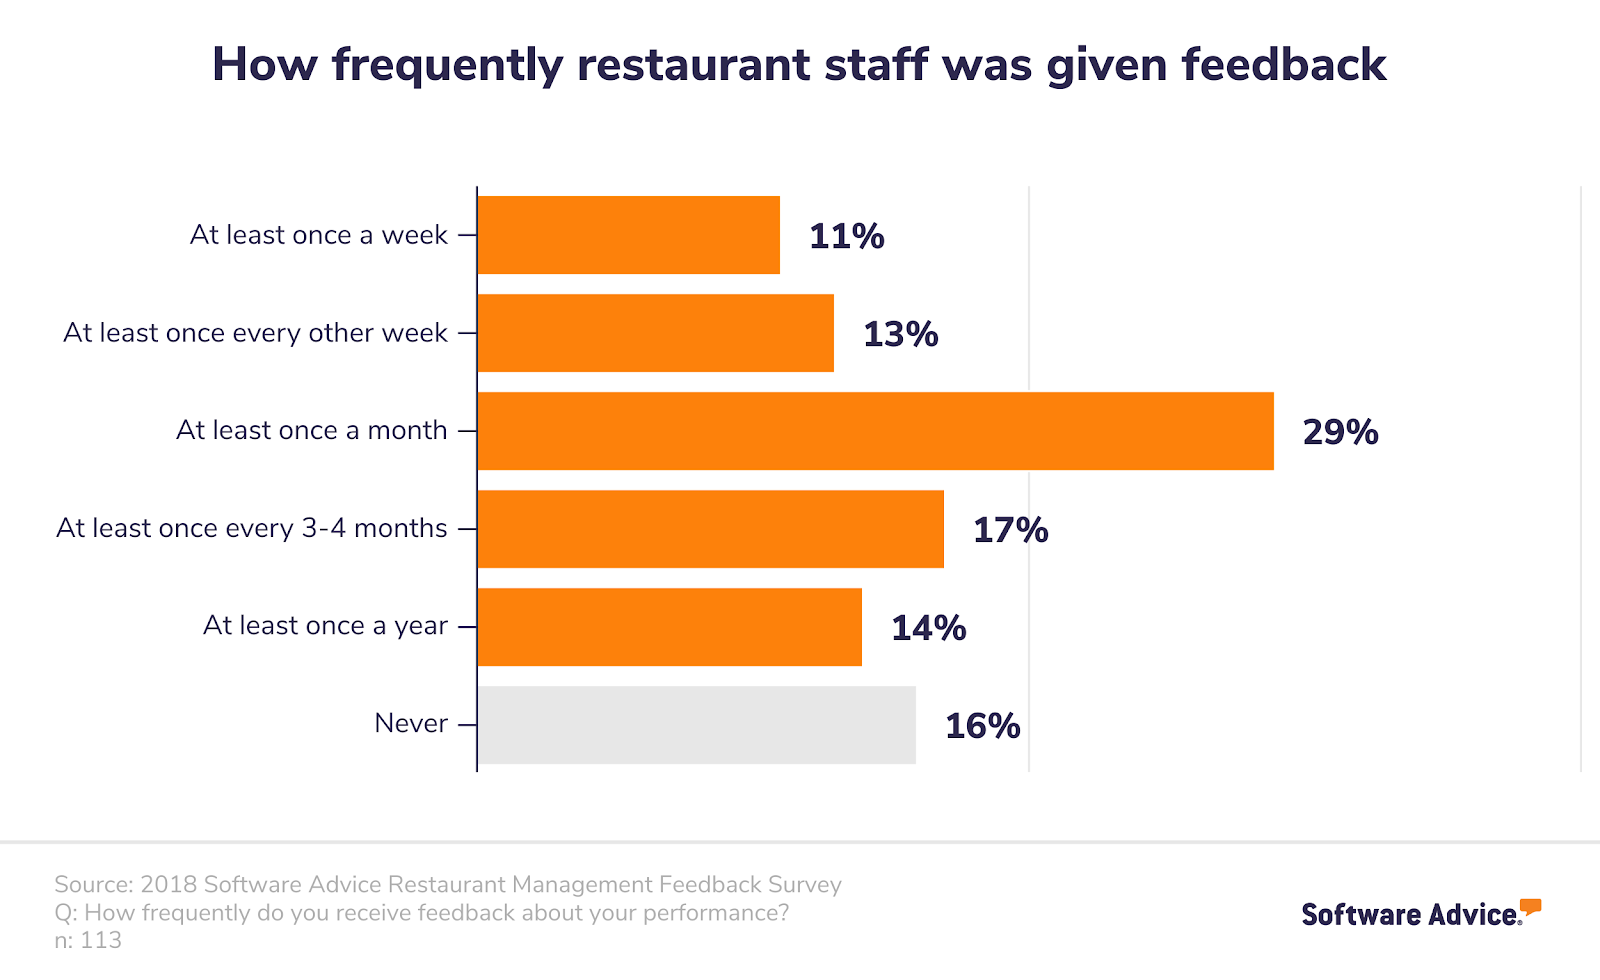 How Frequently Waiters Were Given Feedback About Performance